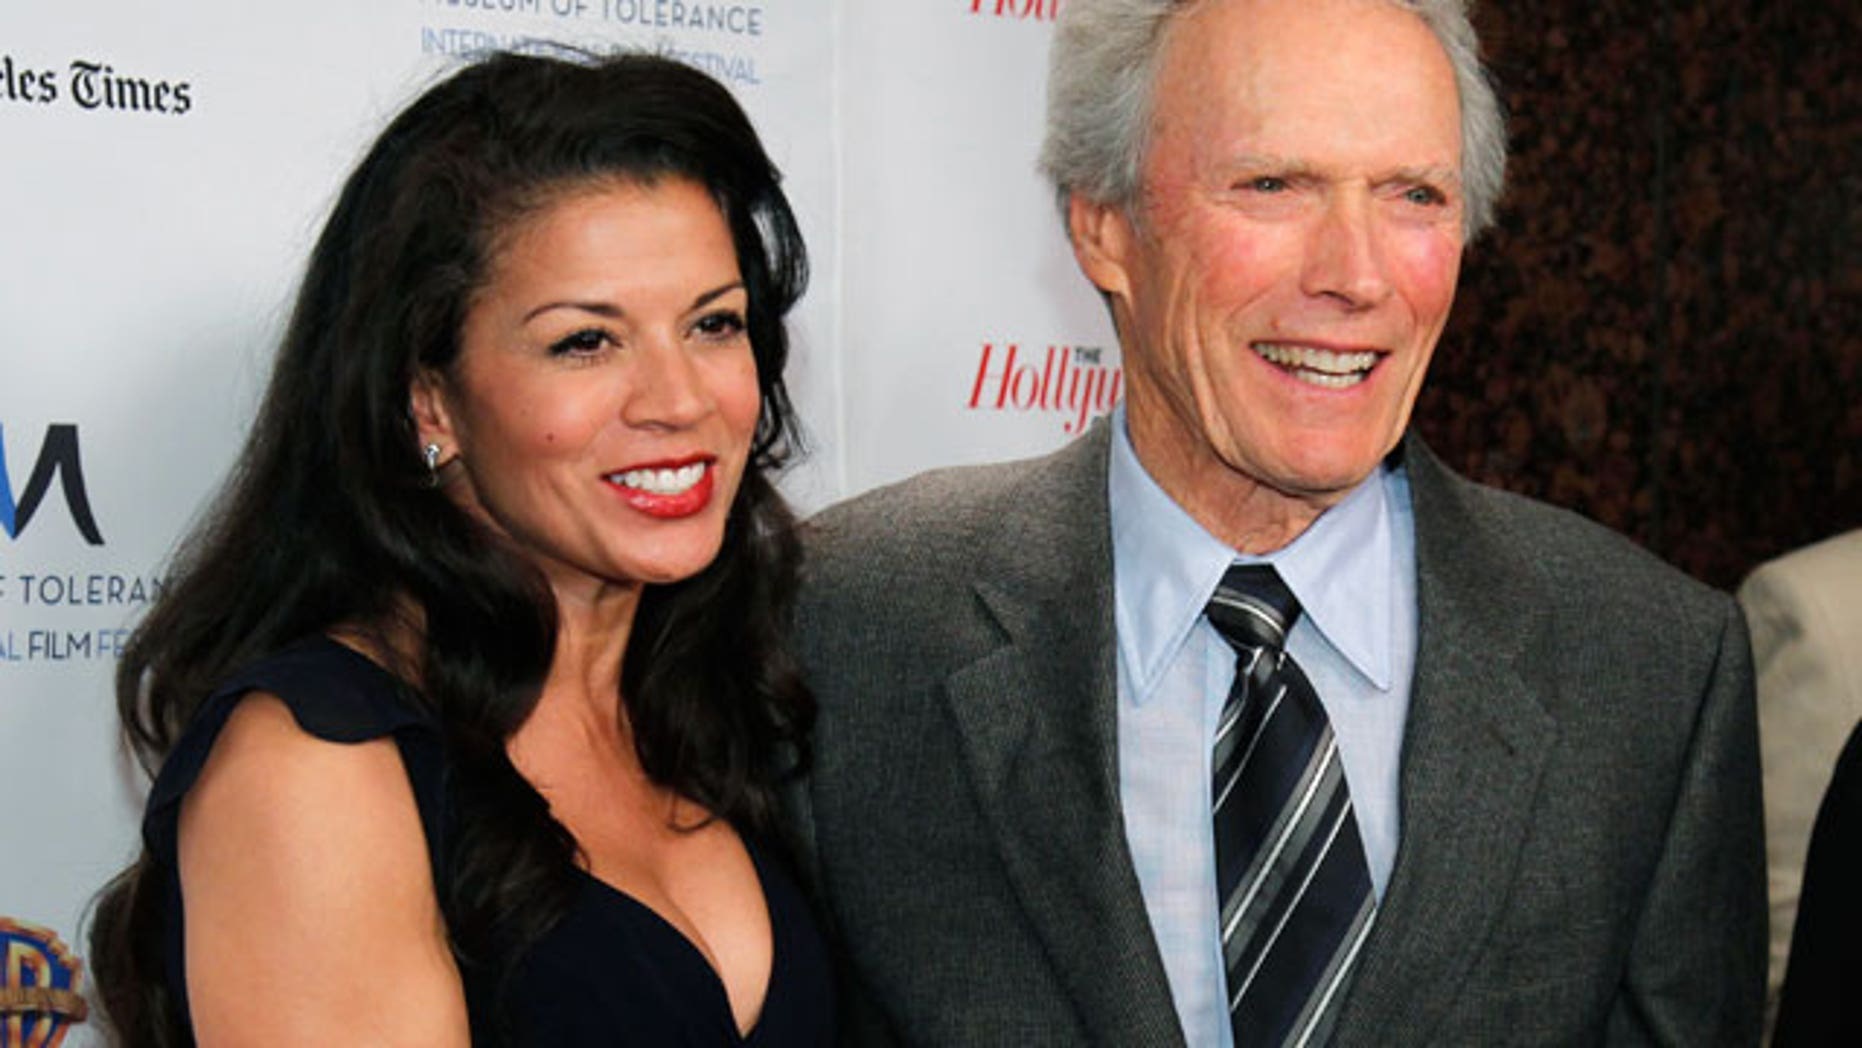 Nov. 14: Director Clint Eastwood (R) and his wife Dina Ruiz Eastwood arrive at the Museum of Tolerance International Film Festival gala awards presentation in his honor in Los Angeles. (Reuters)